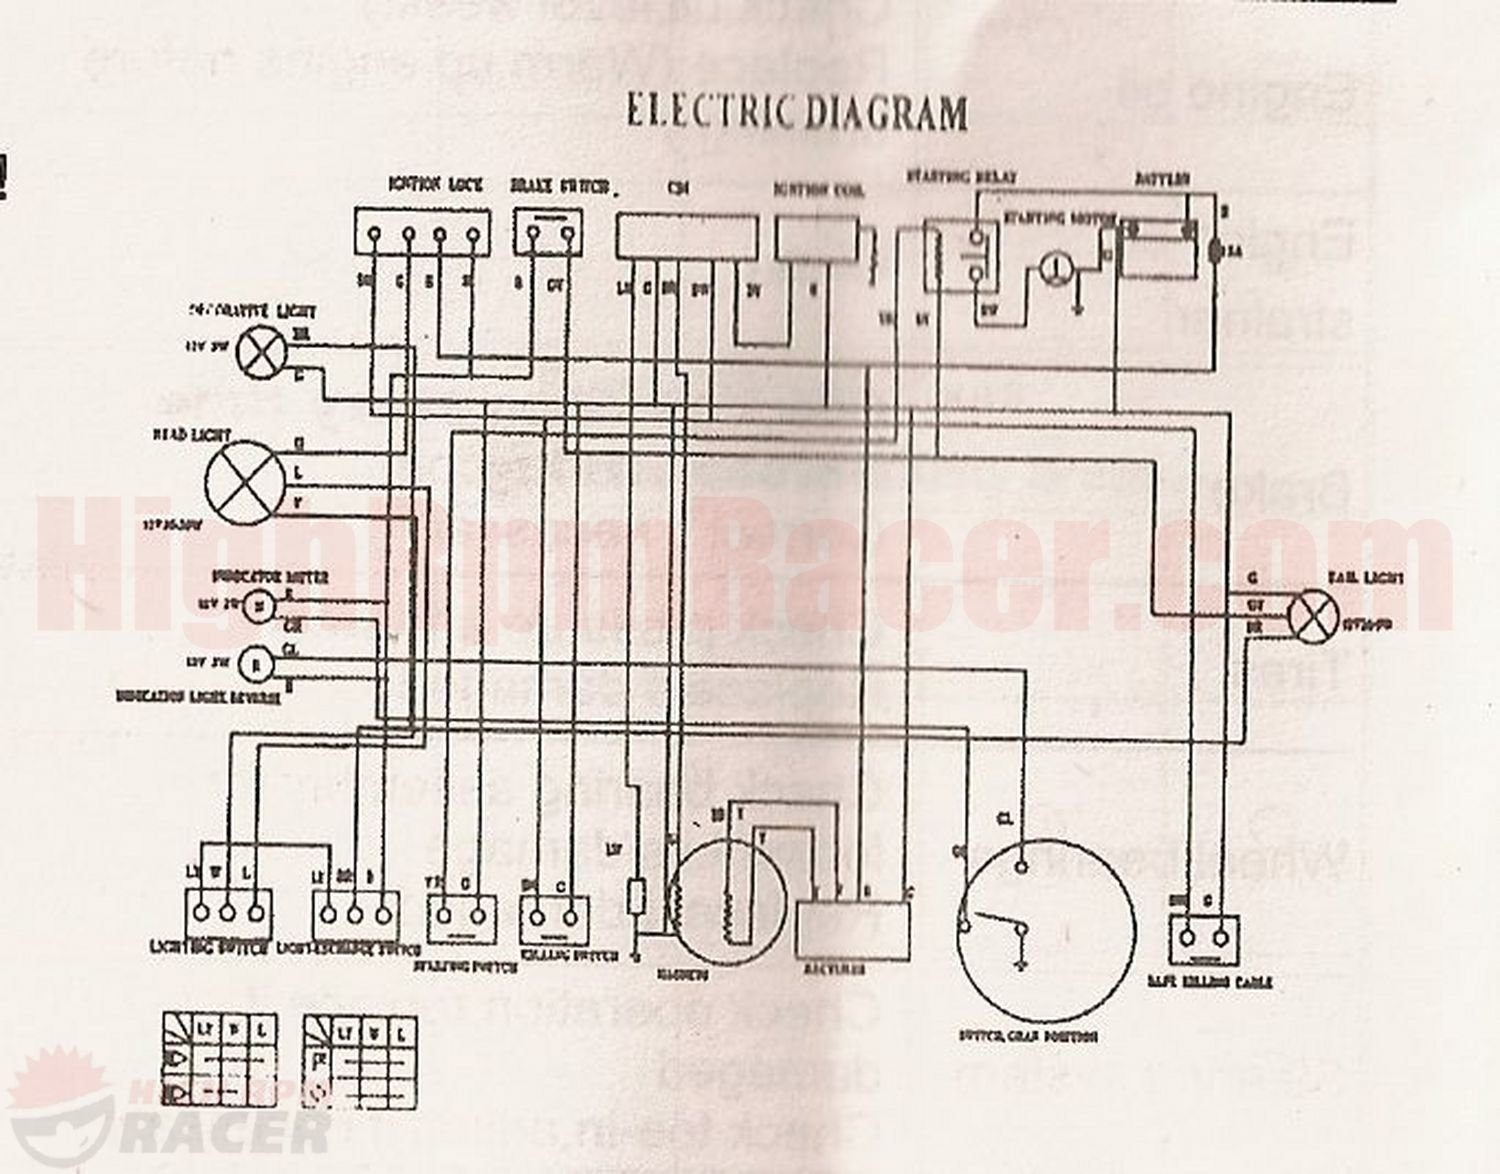 wiring diagram 110cc chinese atv images wheeler wiring diagram wiring diagram honda 110 chinese dirt bike